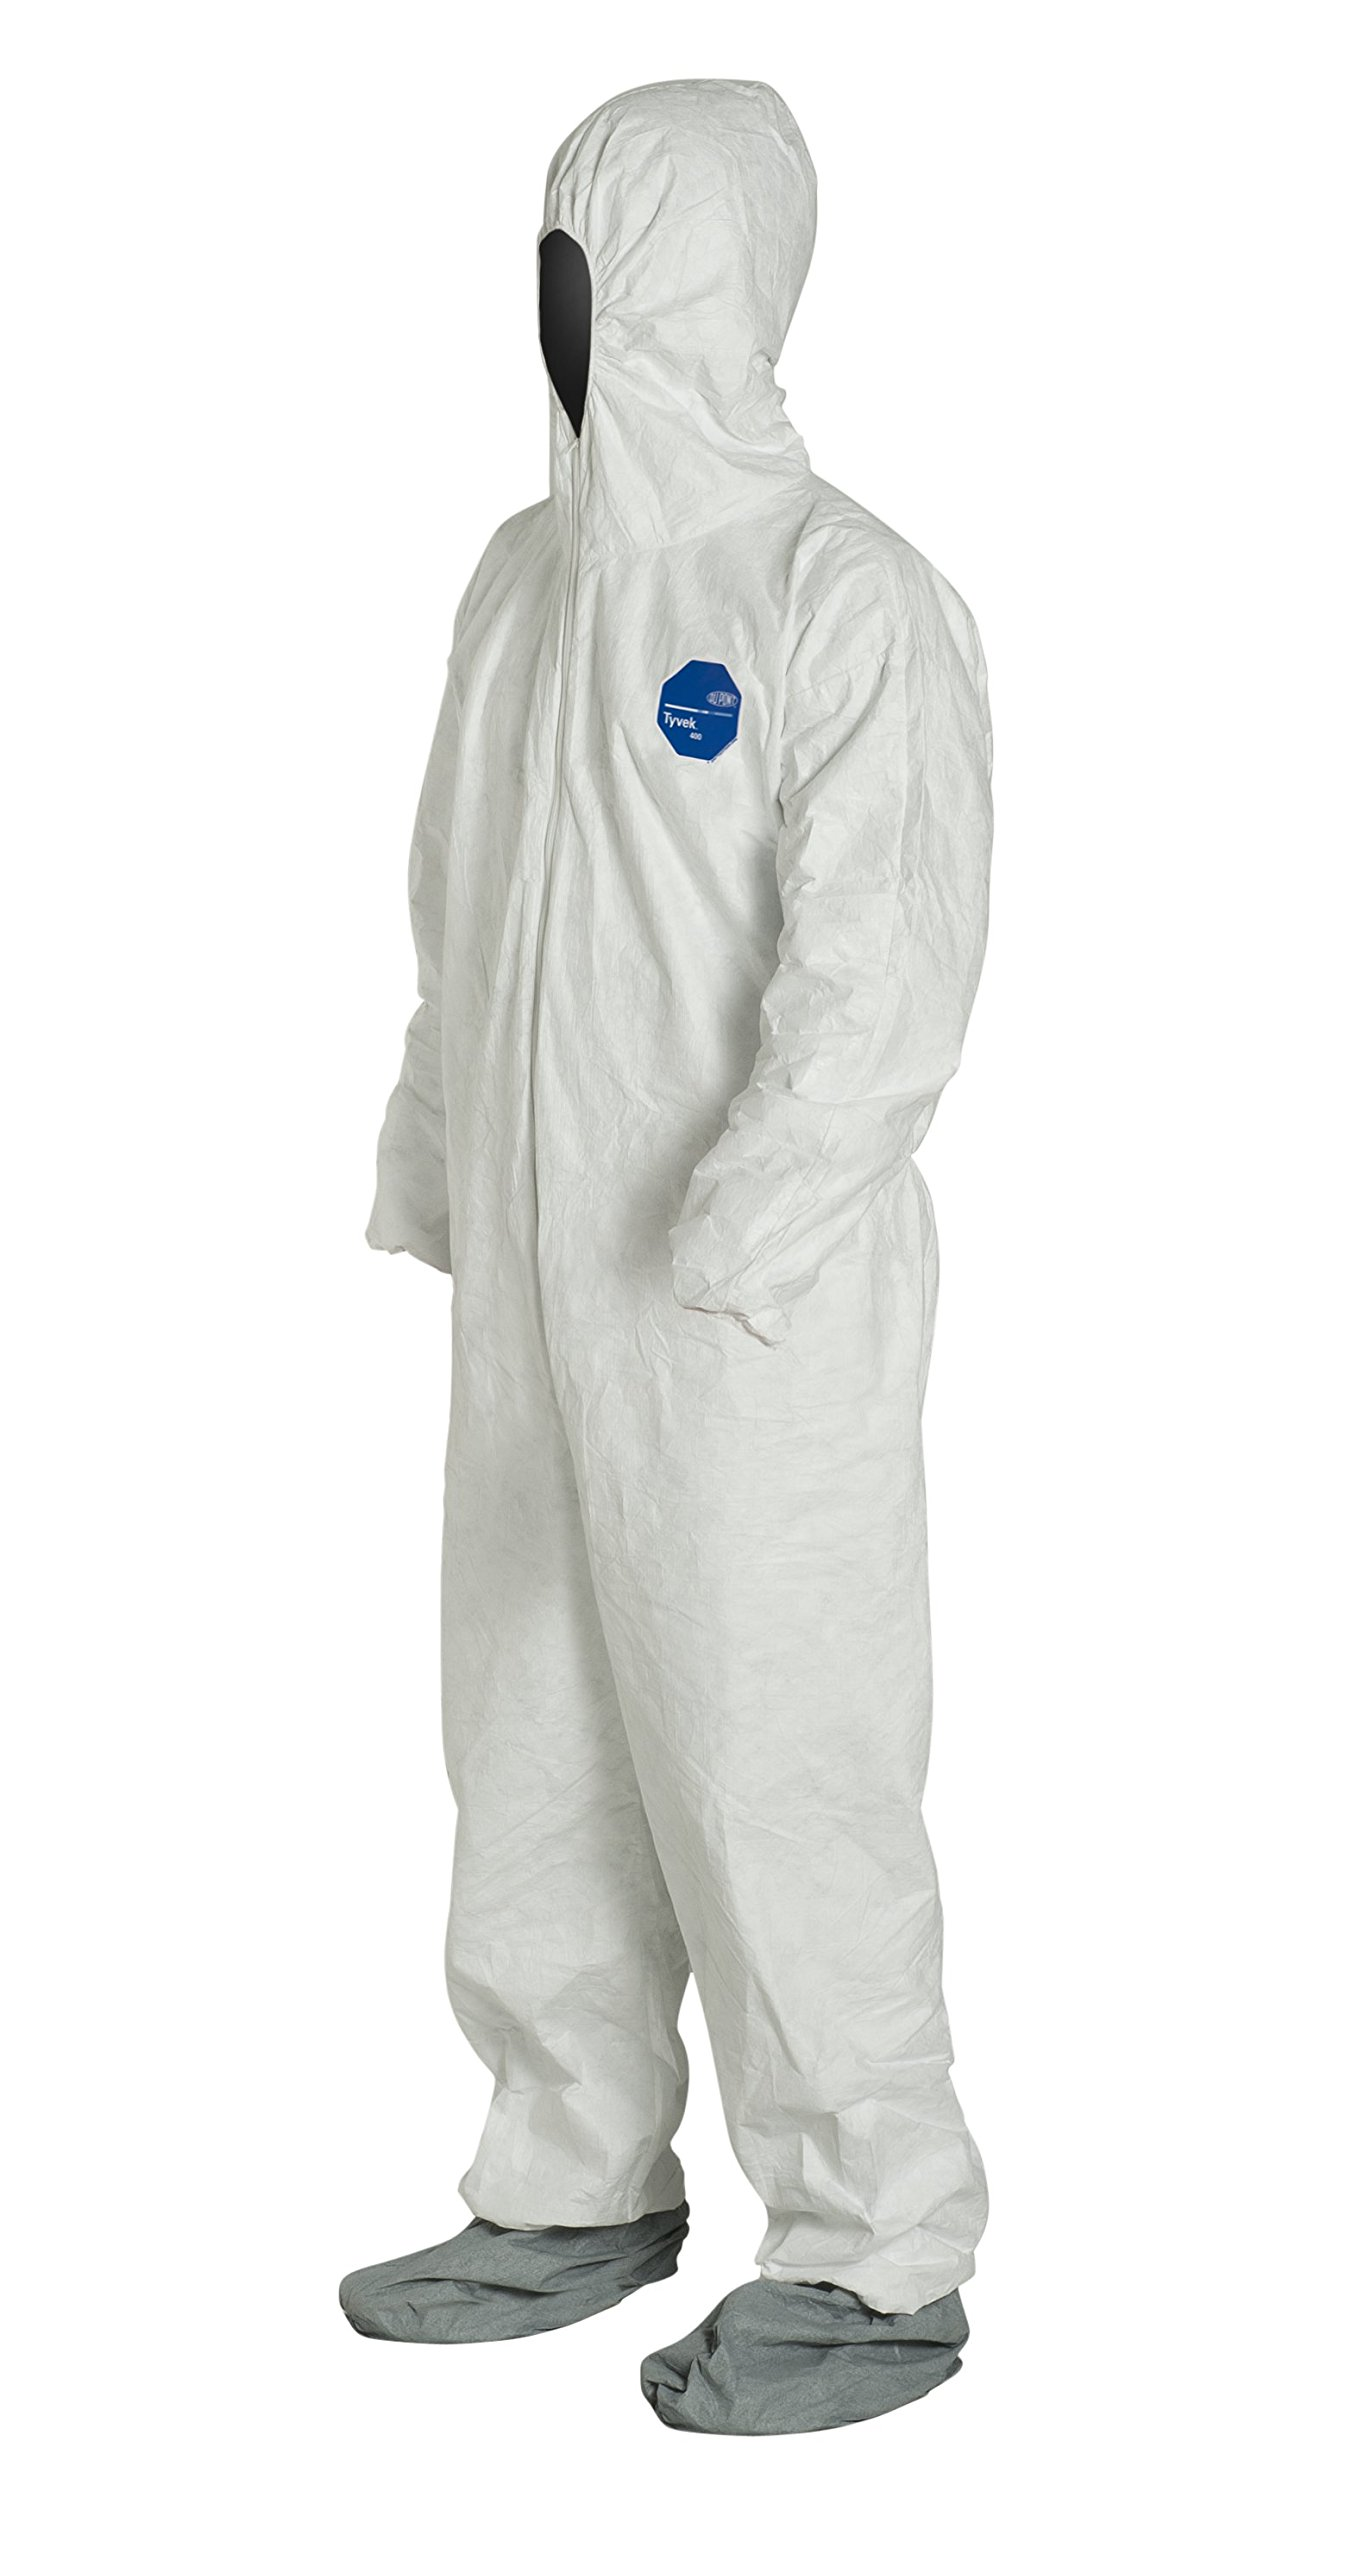 DuPont Tyvek 400 TY122S Disposable Protective Coverall with Elastic Cuffs, Attached Hood and Boots, White, 7X-Large (Pack of 25) by DuPont (Image #4)